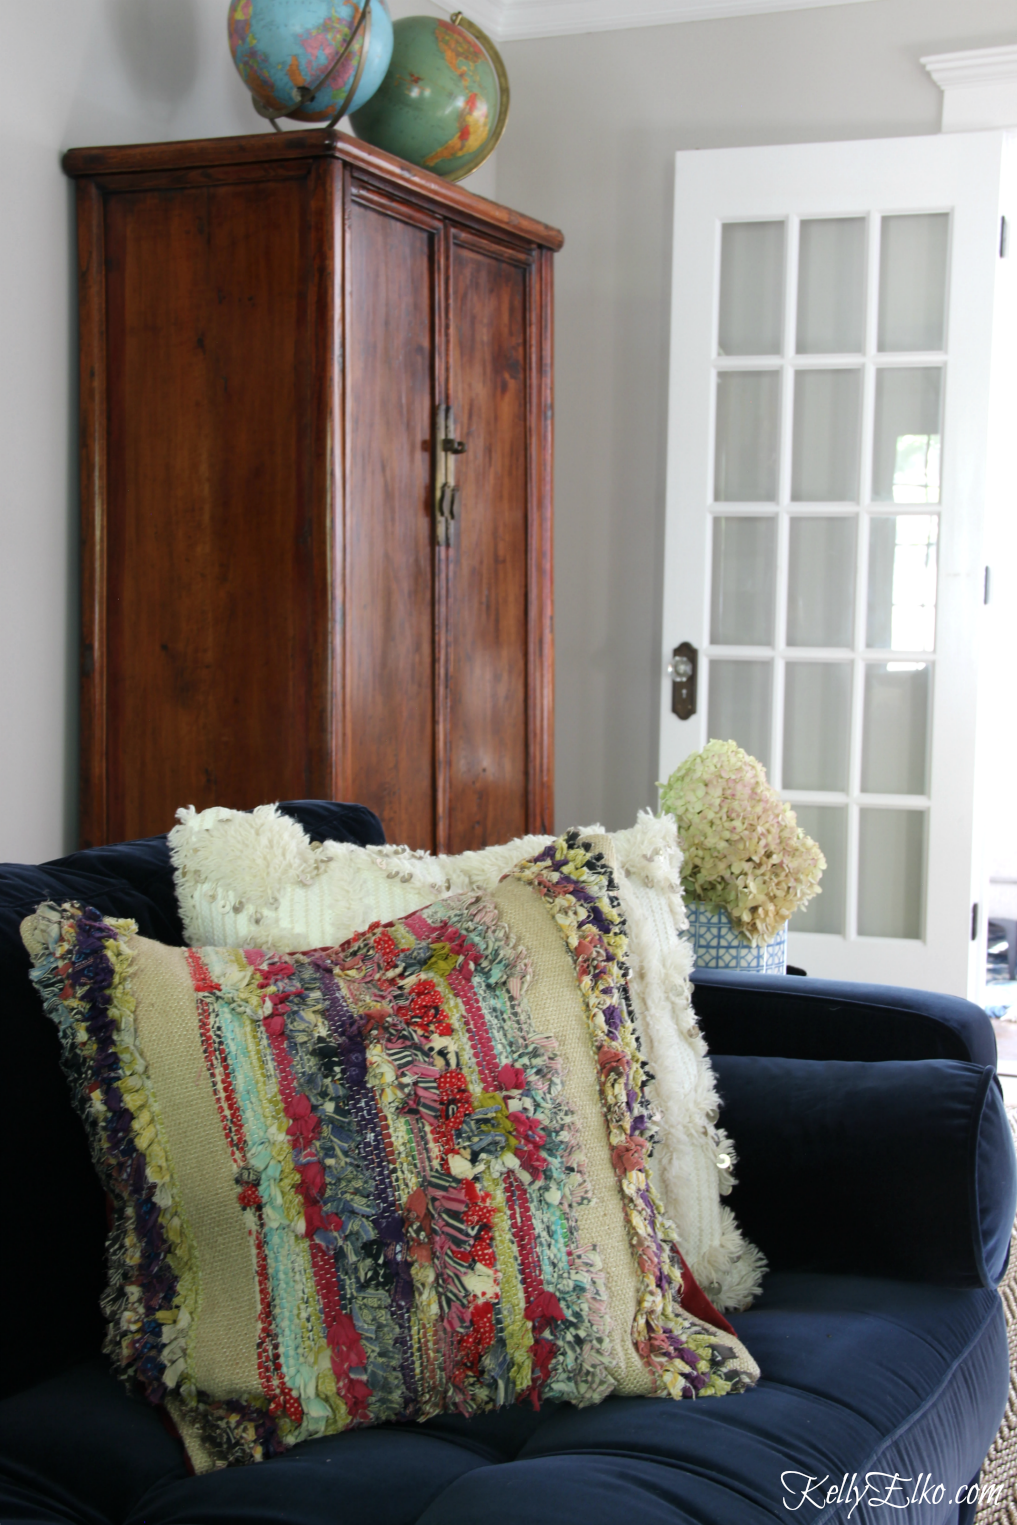 Colorful boho style pillows brighten up a navy blue sofa kellyelko.com